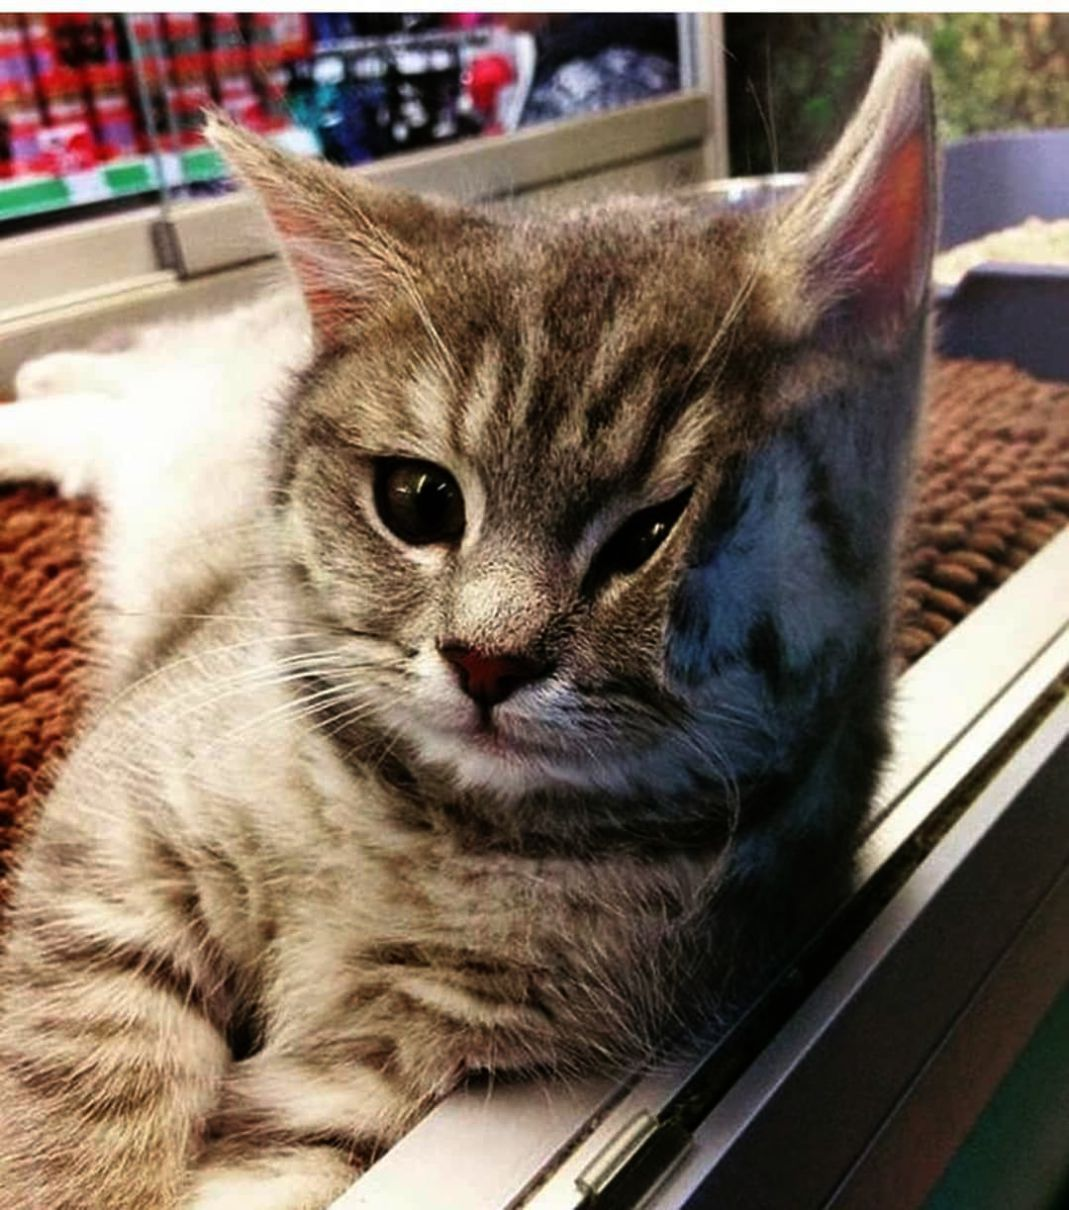 Kittens For Free Chicago Kitten Meows Then Bites During Cute Baby Animals Playing Videos Out Cute Animals To Draw Videos Minus Gr Cute Cats Funny Animals Cats